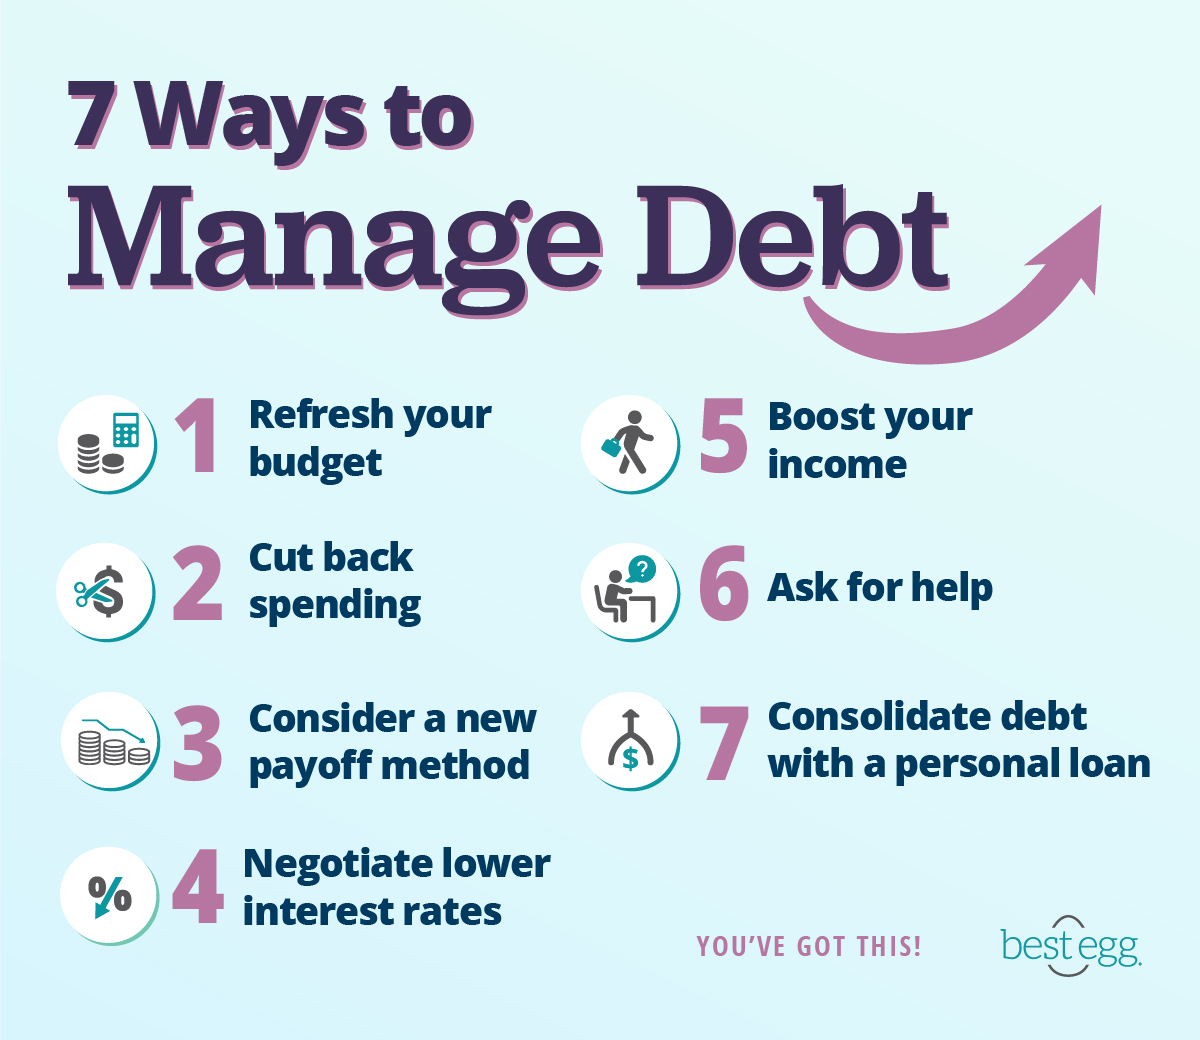 graphic that displays 7 ways to manage debt